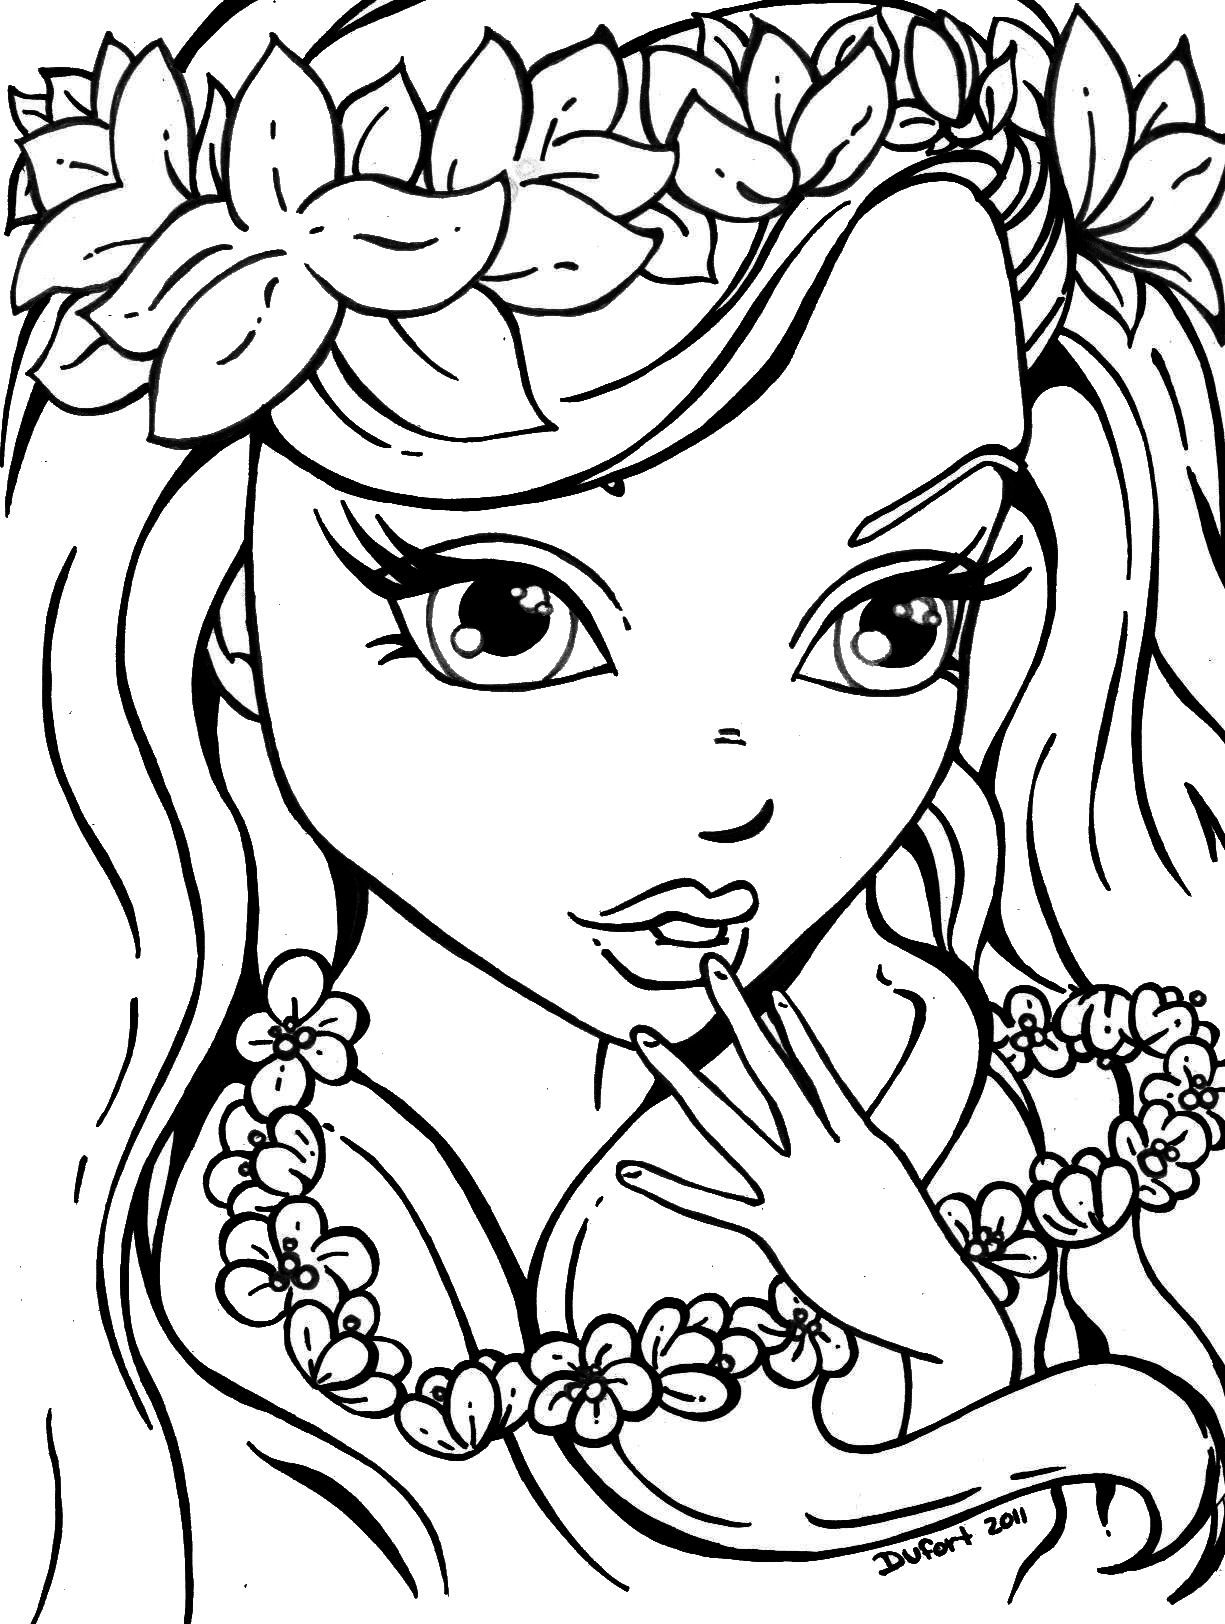 Coloring Pages for Girls Printable 11p - Free For kids